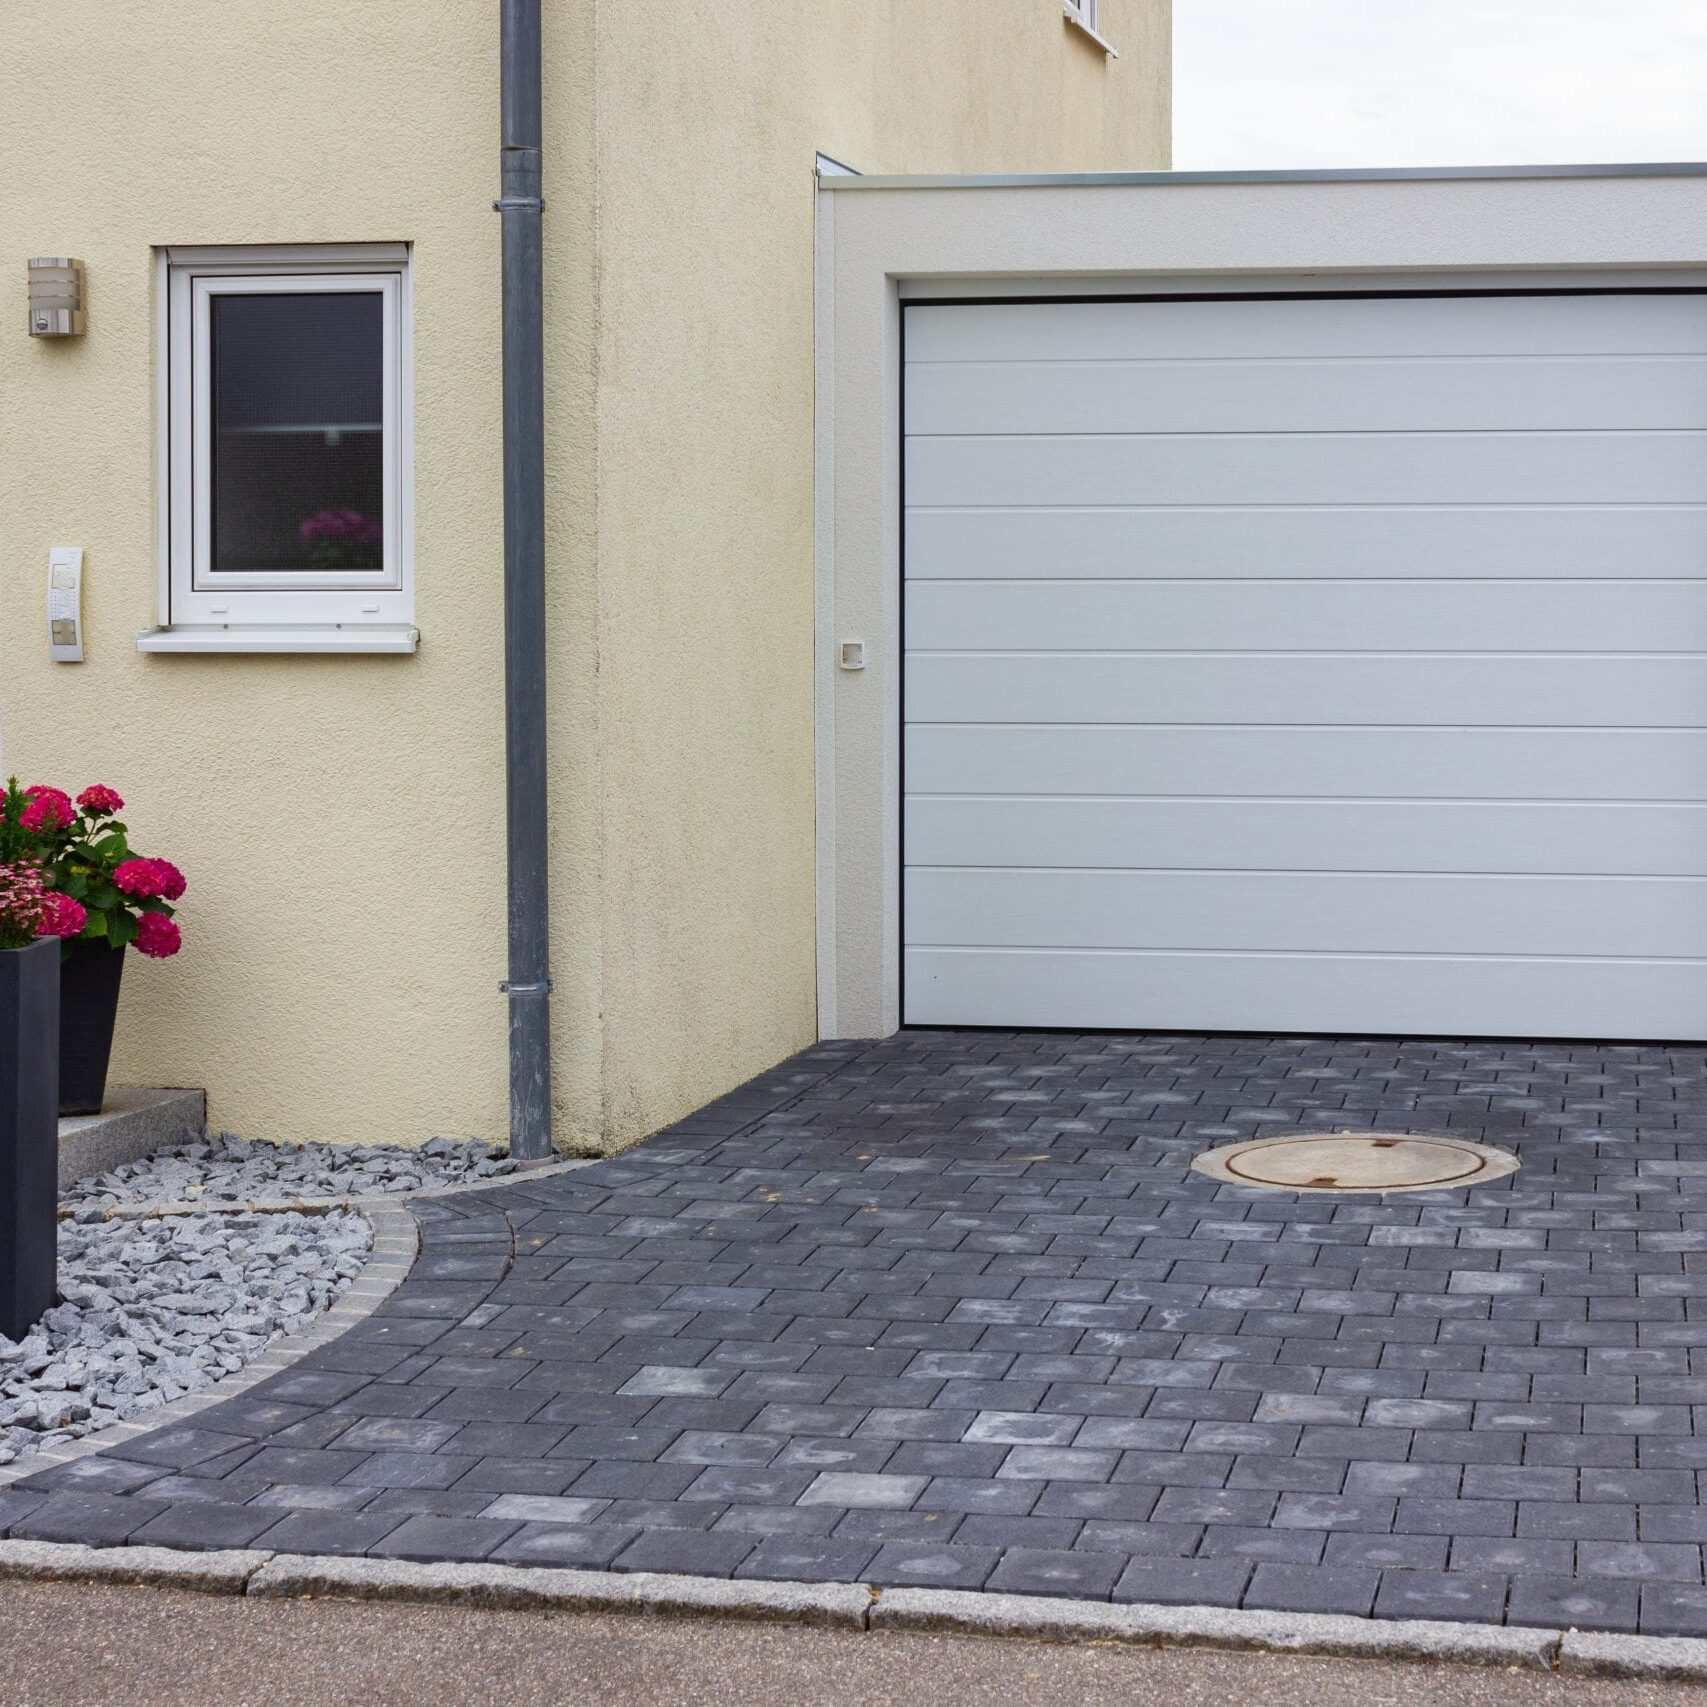 New Driveway built in Barnsley